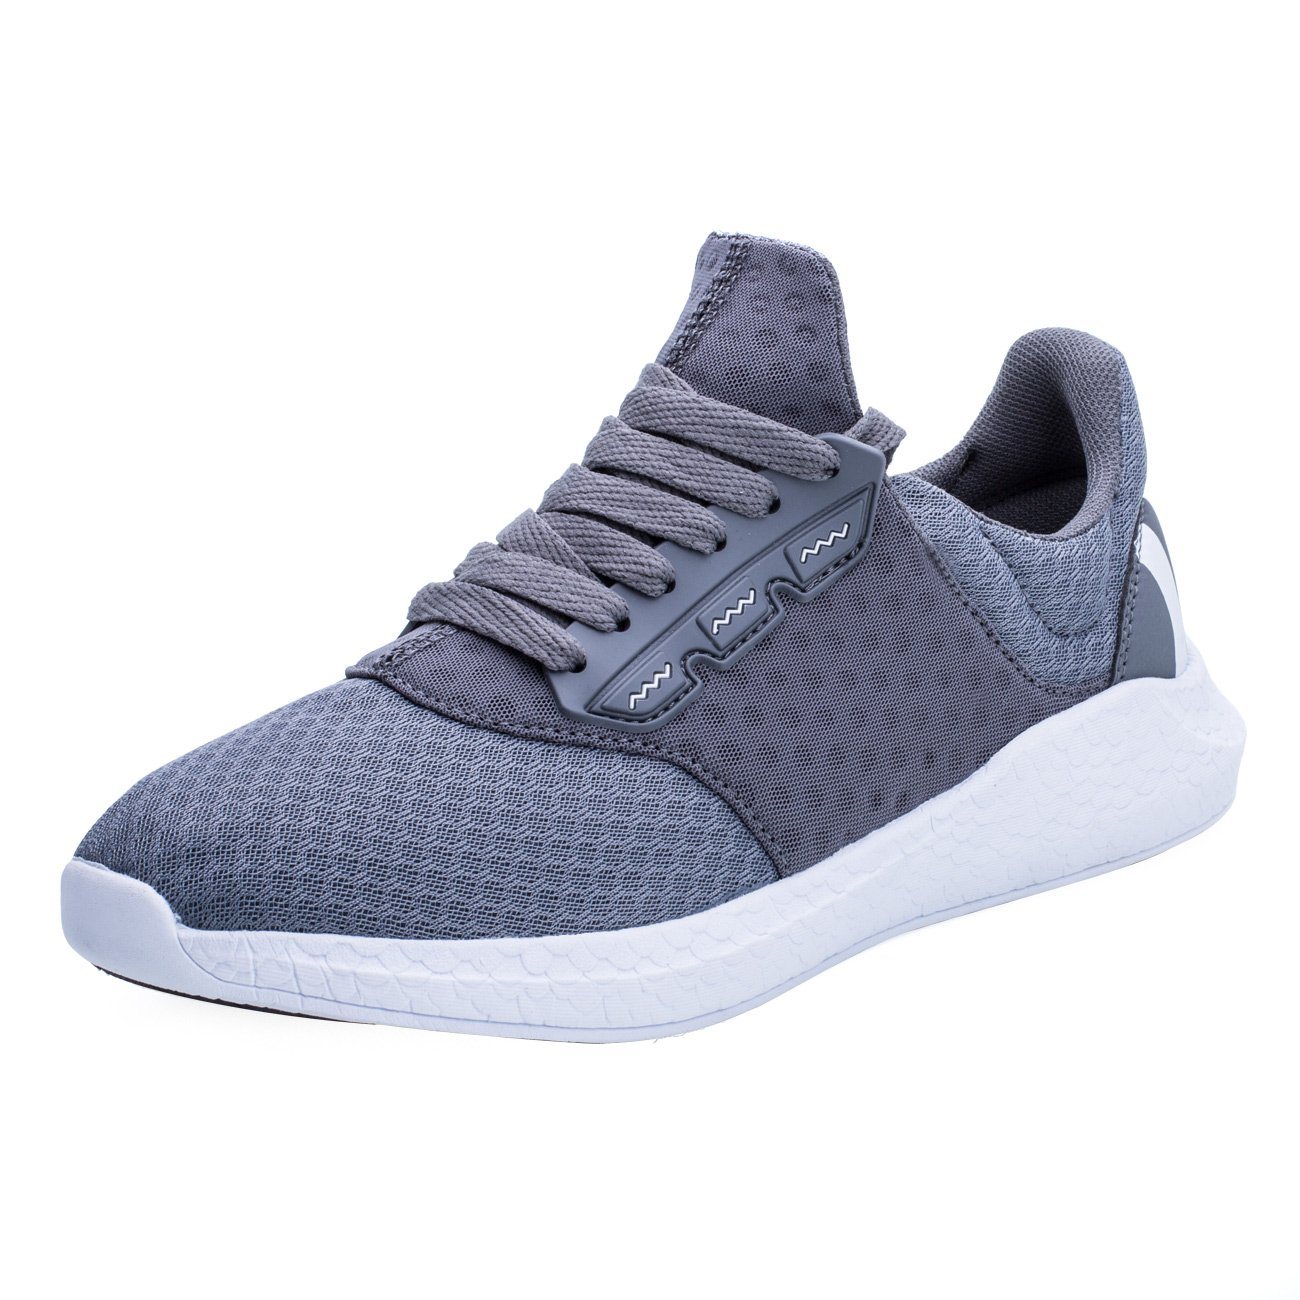 Keezmz Mens Breathable Comfortable LaceUp Running Shoes Walk Outdoor Exercise Athletic Sneakers  B075TYG3RH